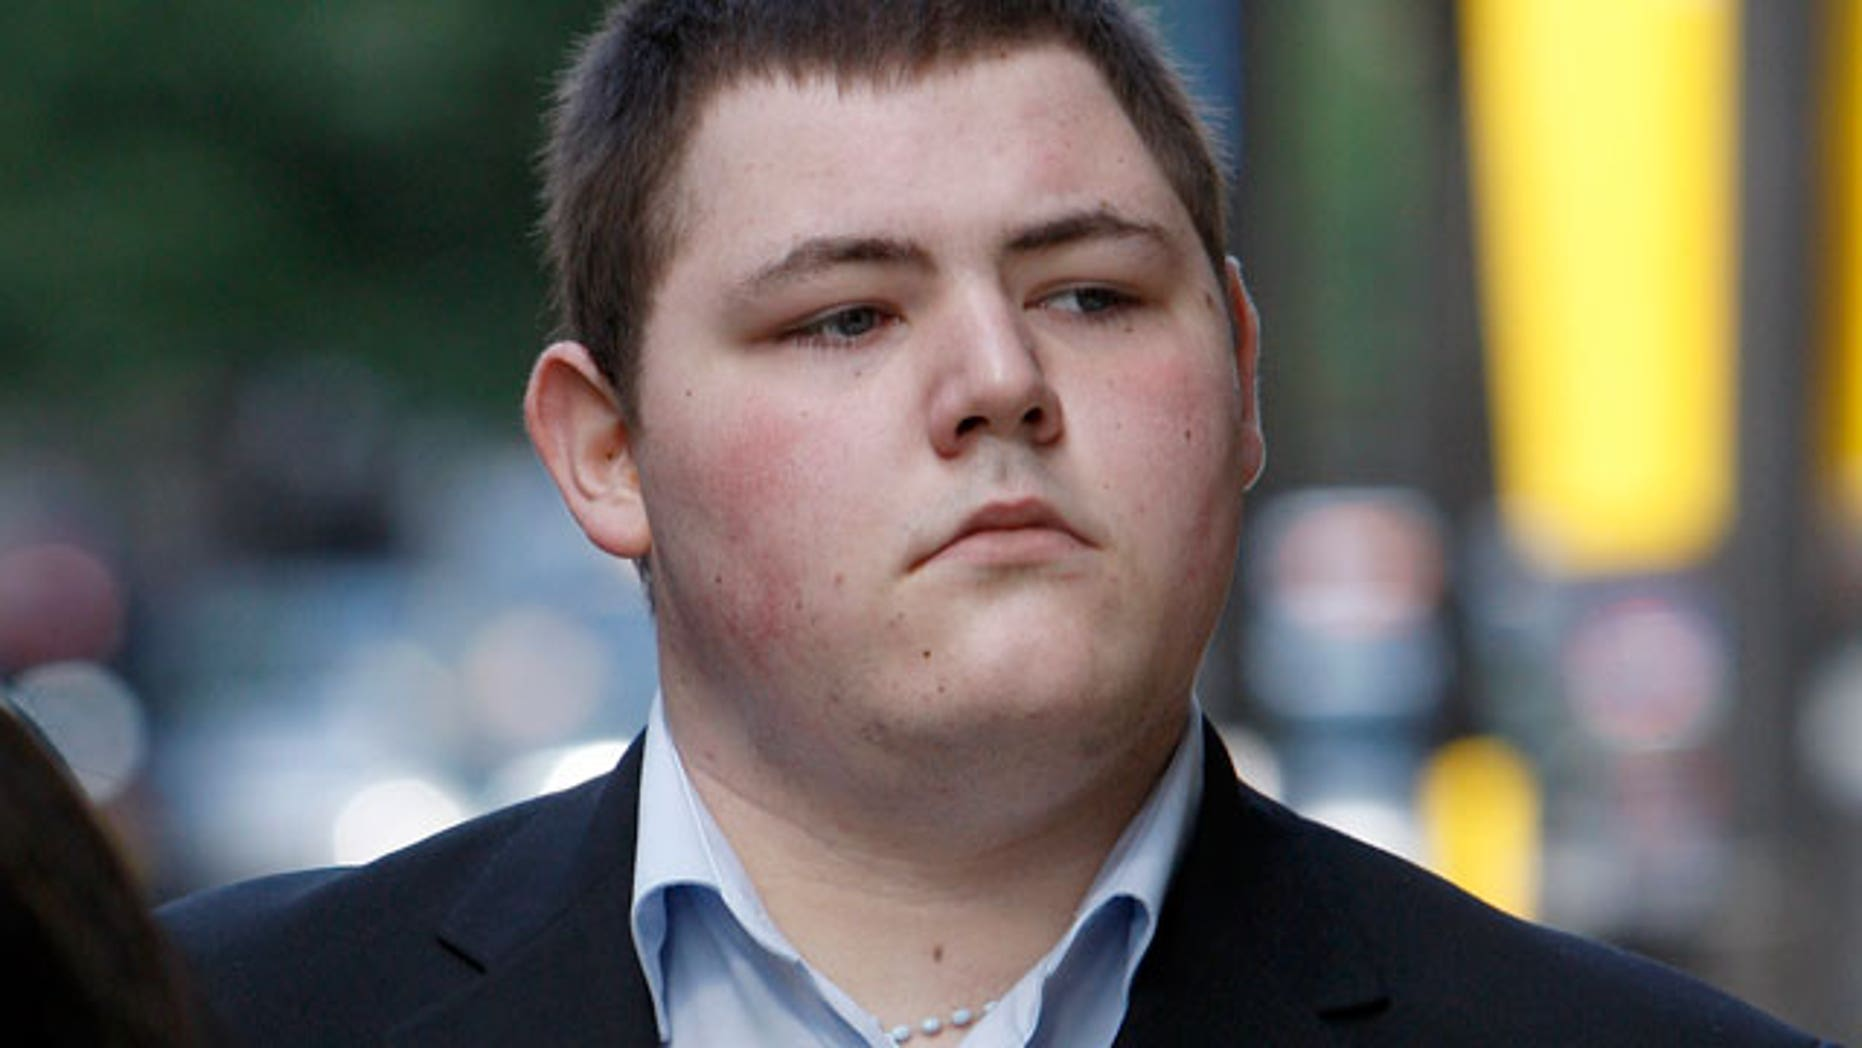 FILE: Actor Jamie Waylett arrives at Westminster Magistrates Court in London in July of 2009.